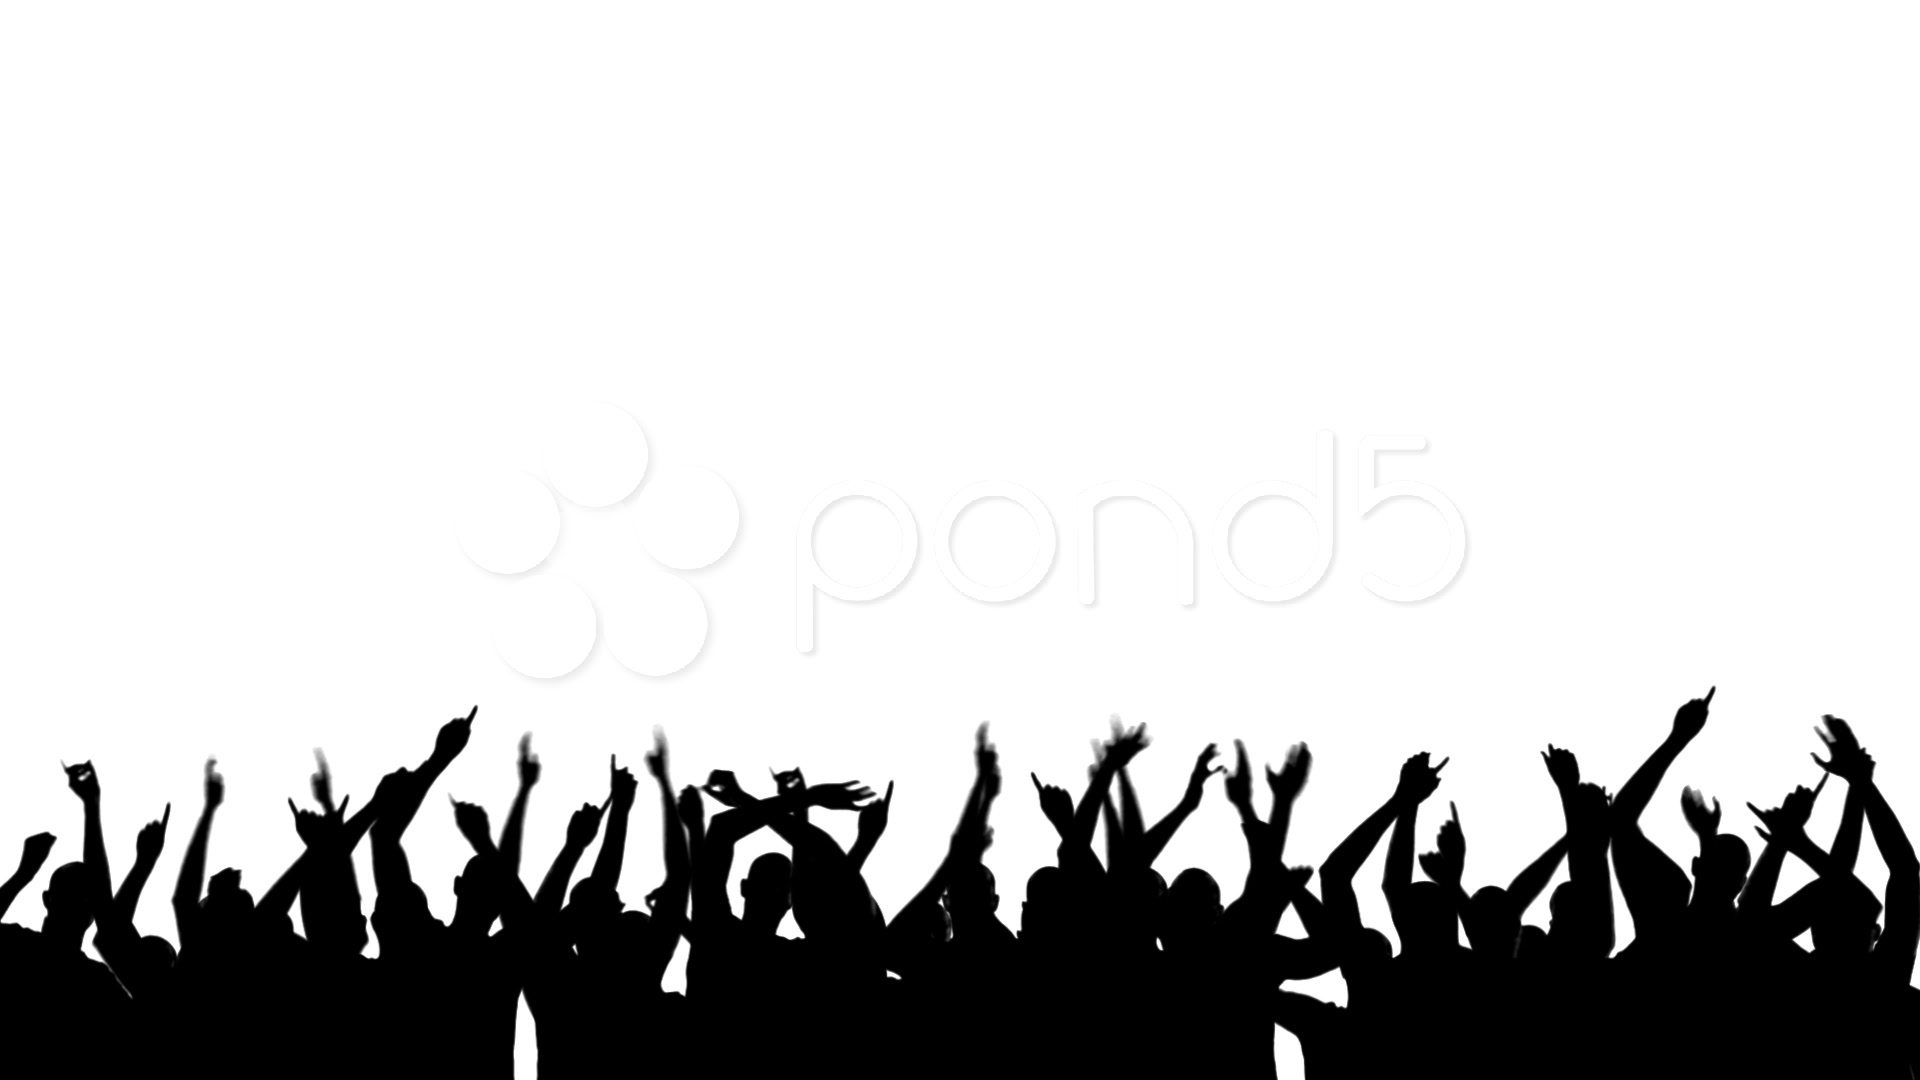 Silhouette . Crowd clipart